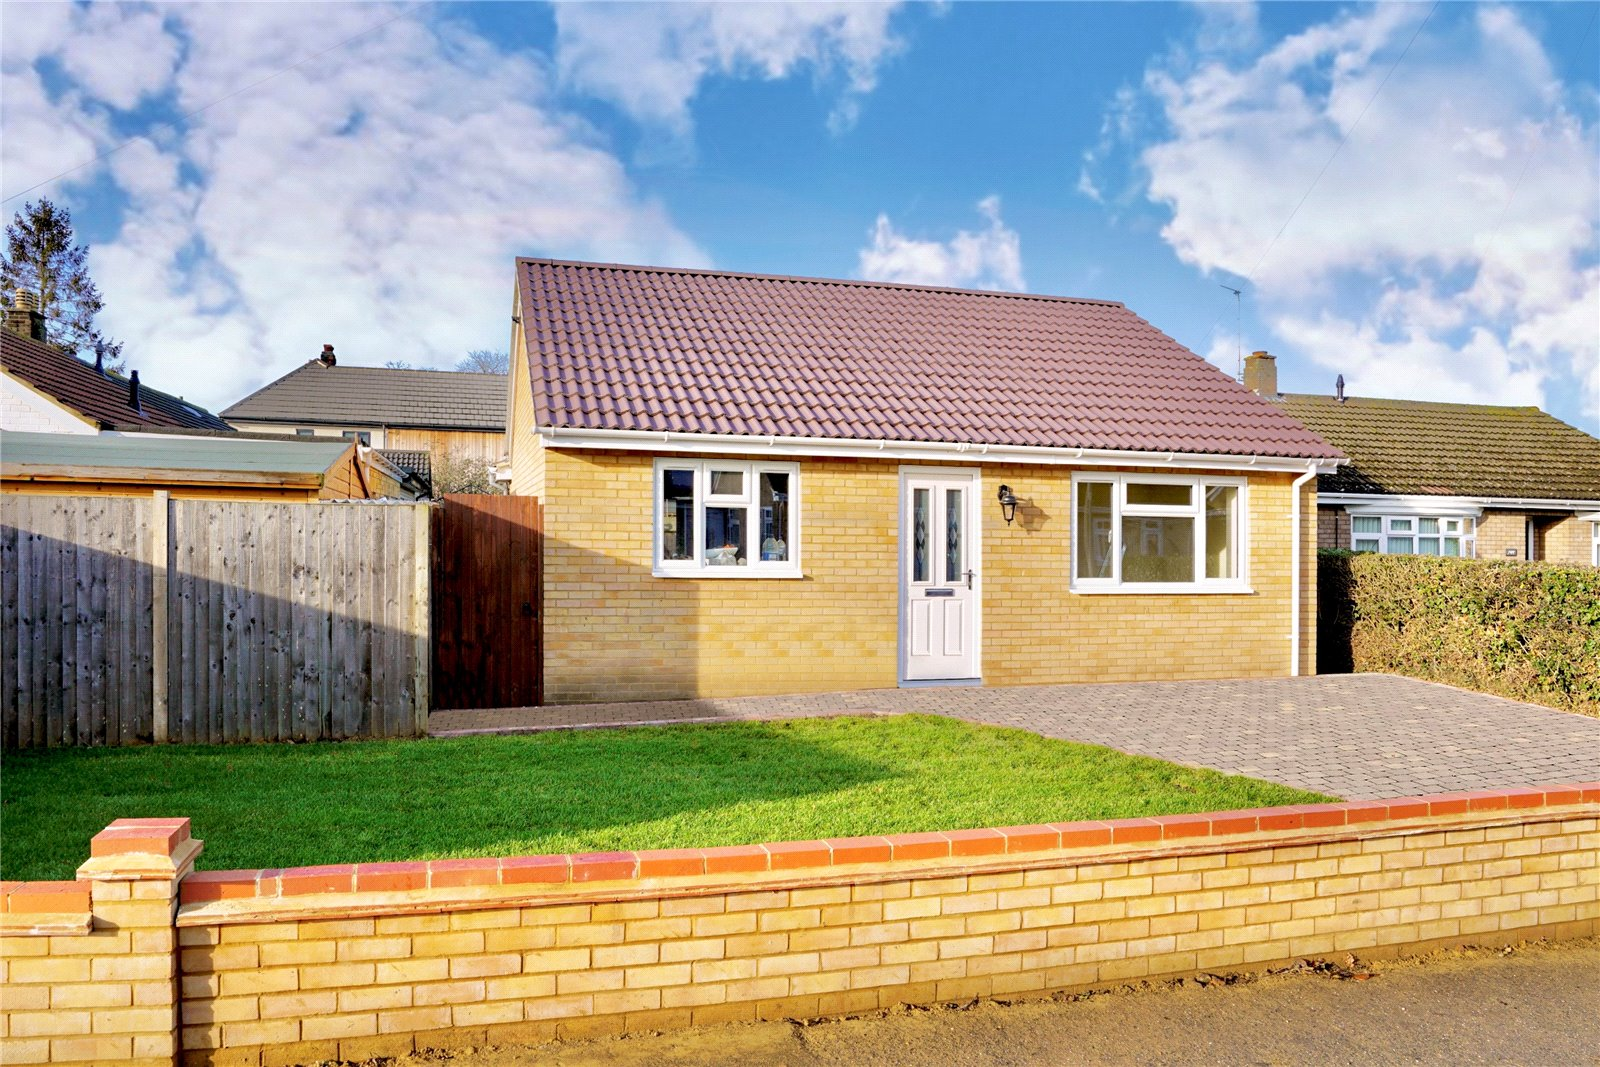 2 bed bungalow for sale in Eaton Socon, PE19